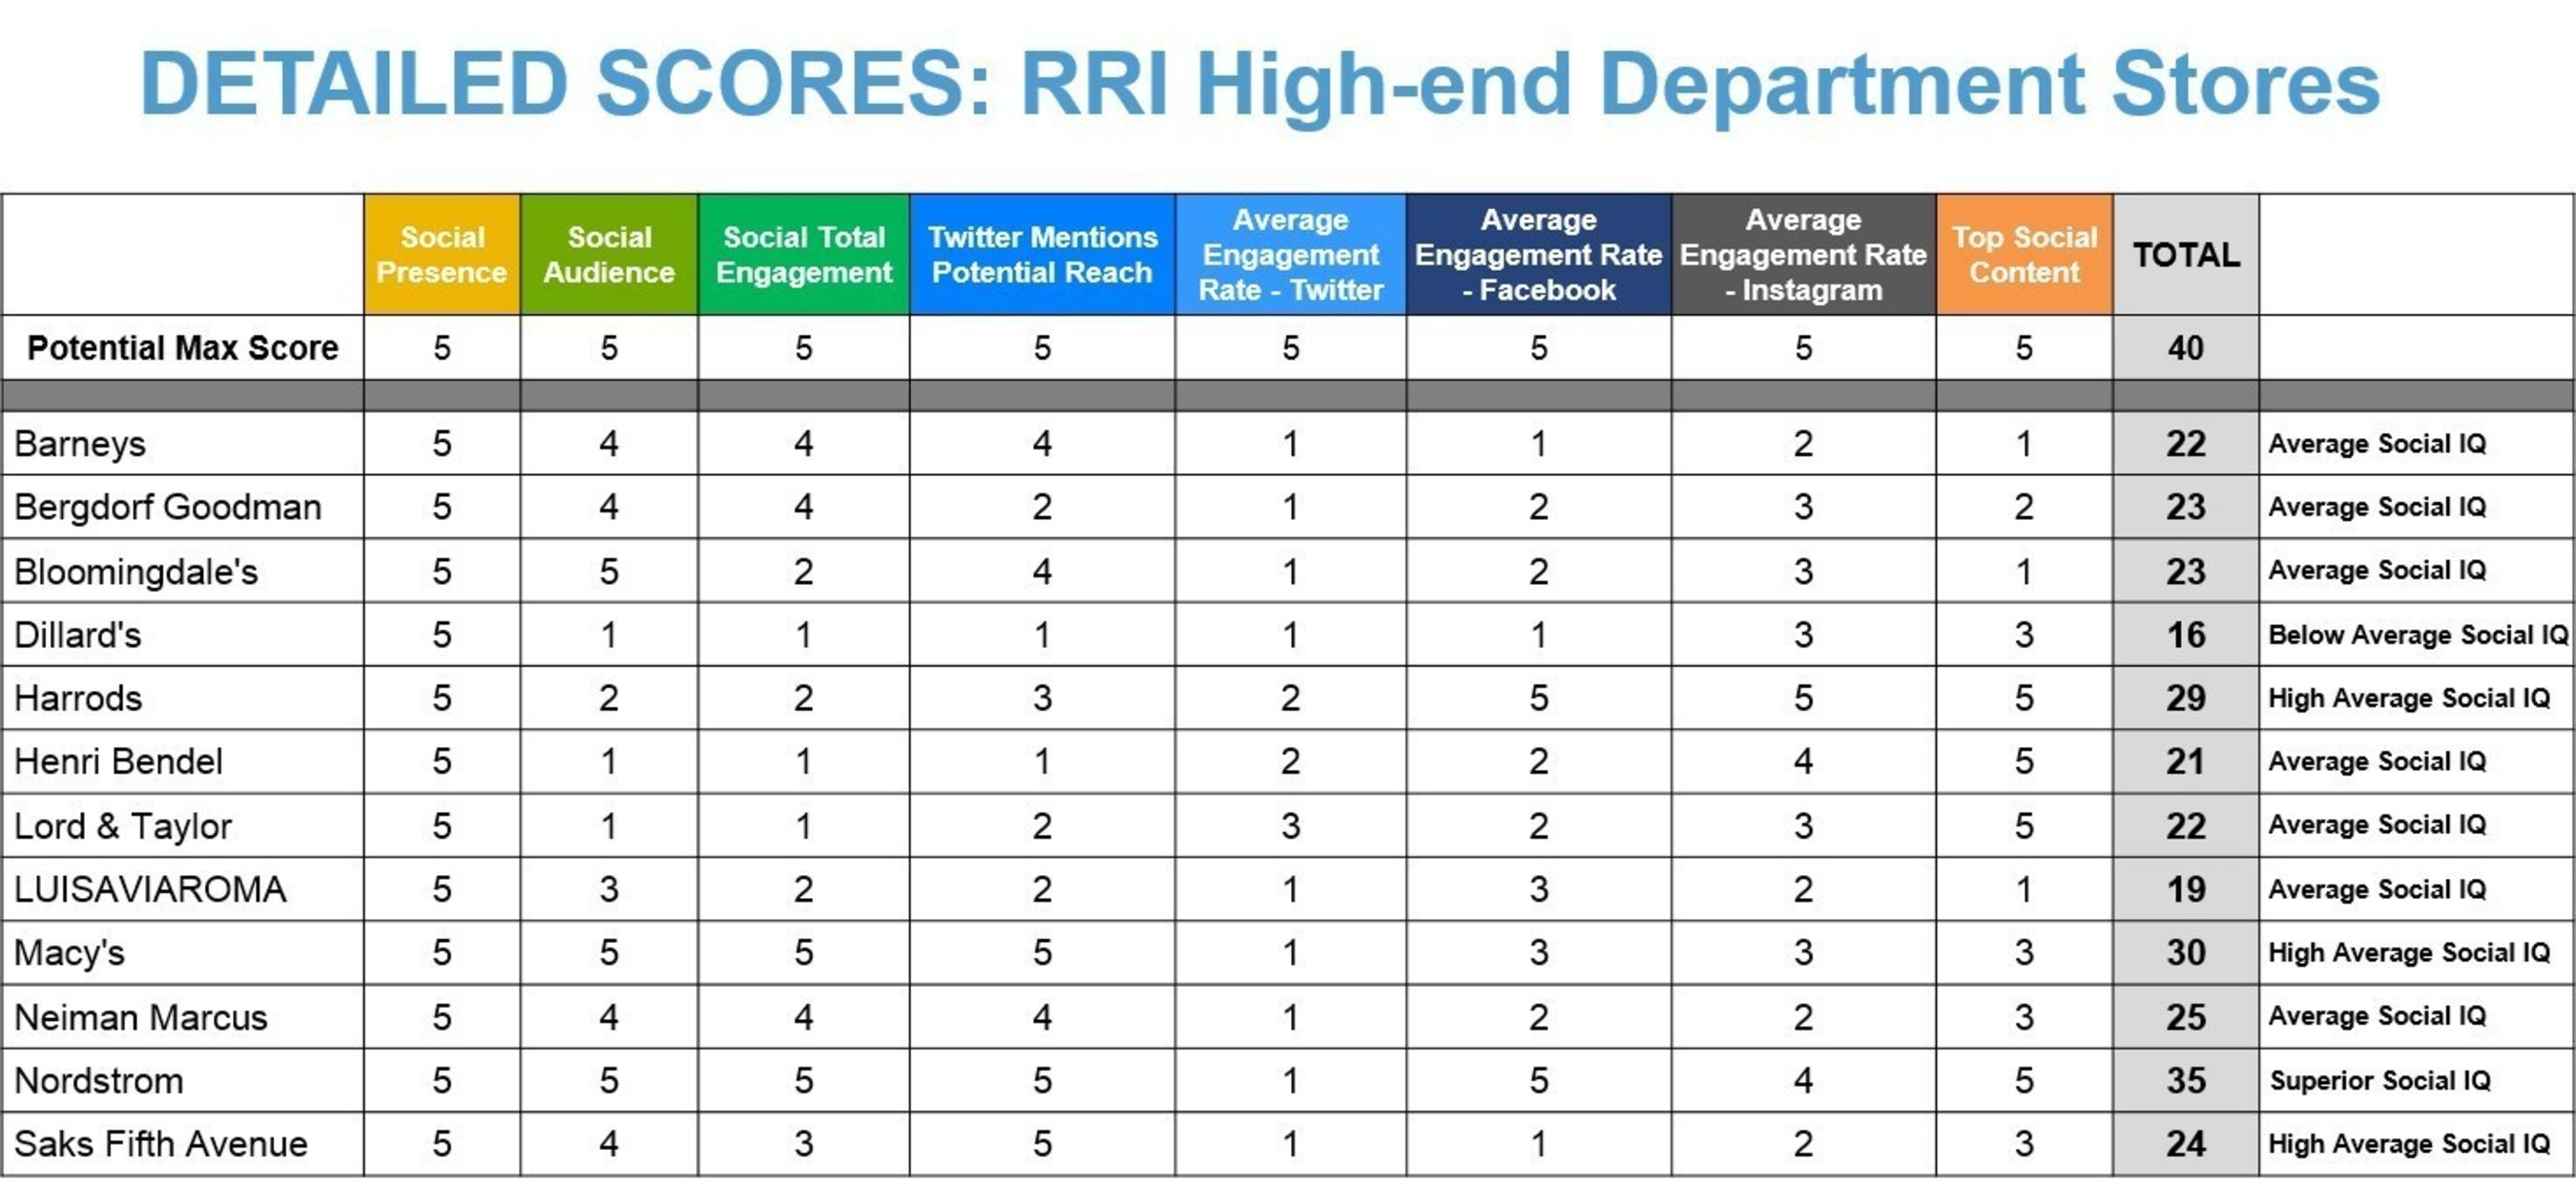 ... across all categories for the RRI High-end Department Store Q1 2015